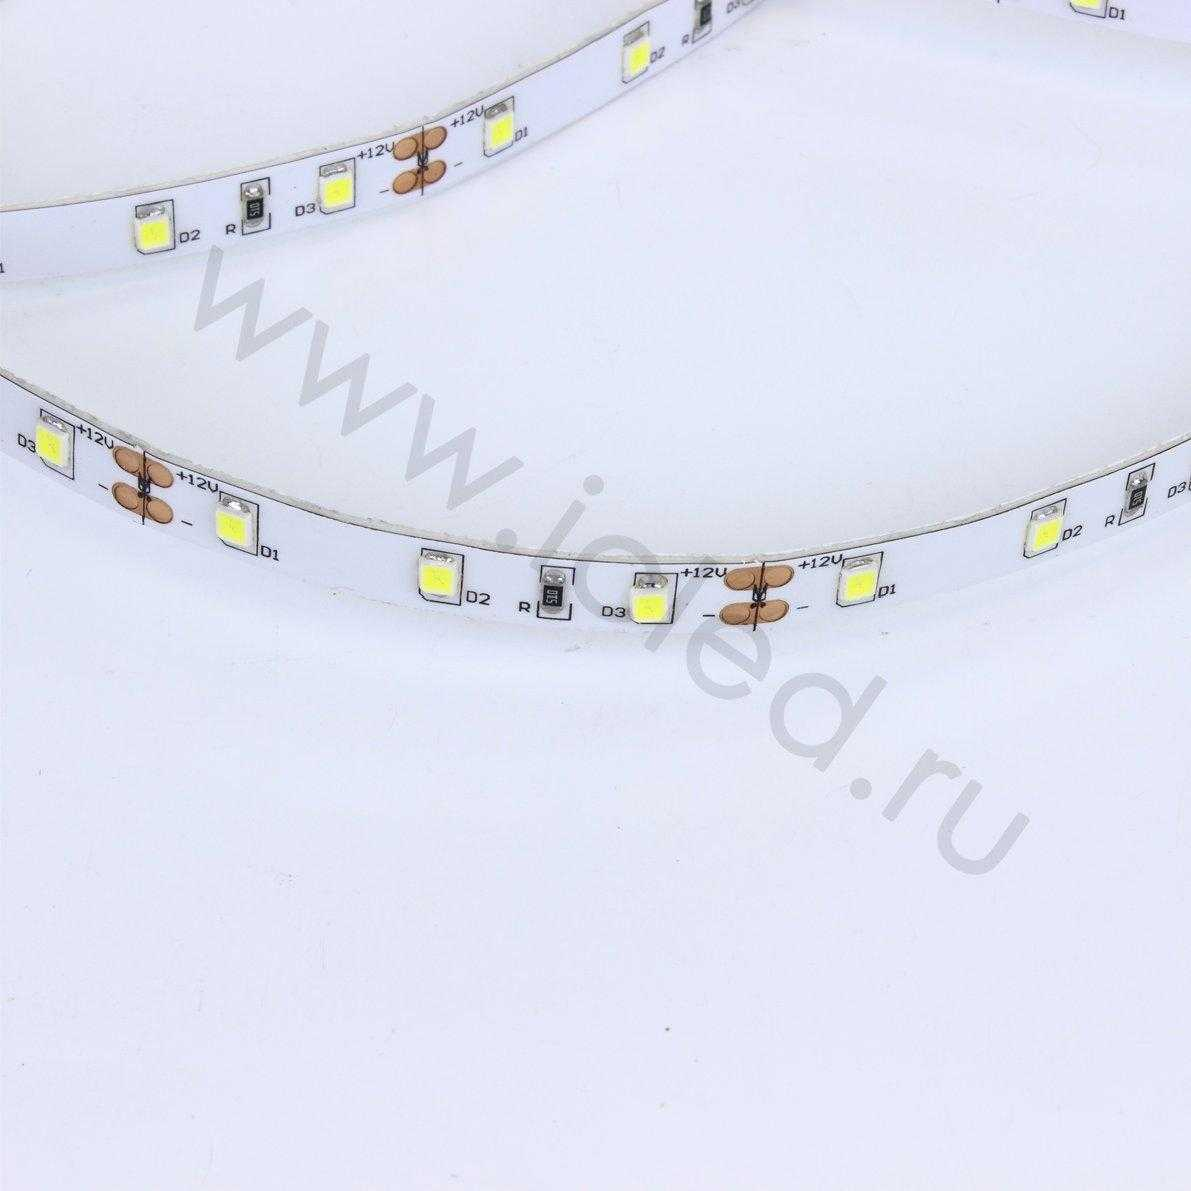 Светодиодная лента LUX class 2835 60led/m, cool white, 12V, nano IP54, N52